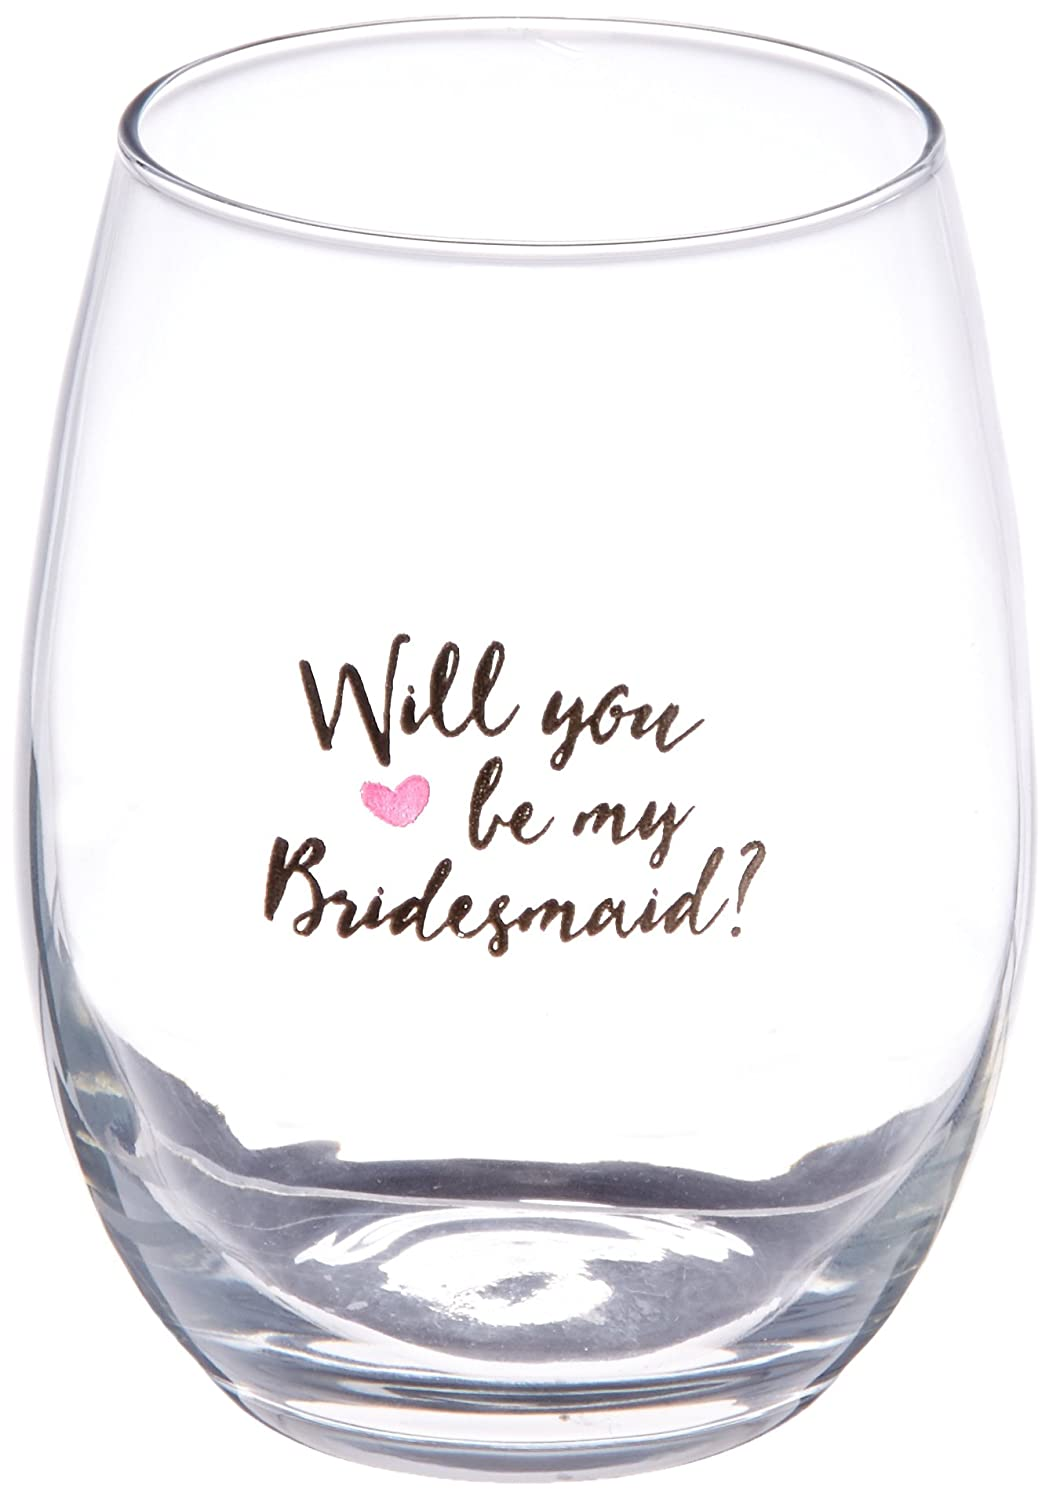 c6efe74887c Kate Aspen Will You Be My Bridesmaid Pink Heart Stemless Wine Glass (Set of  4) 15 Oz.